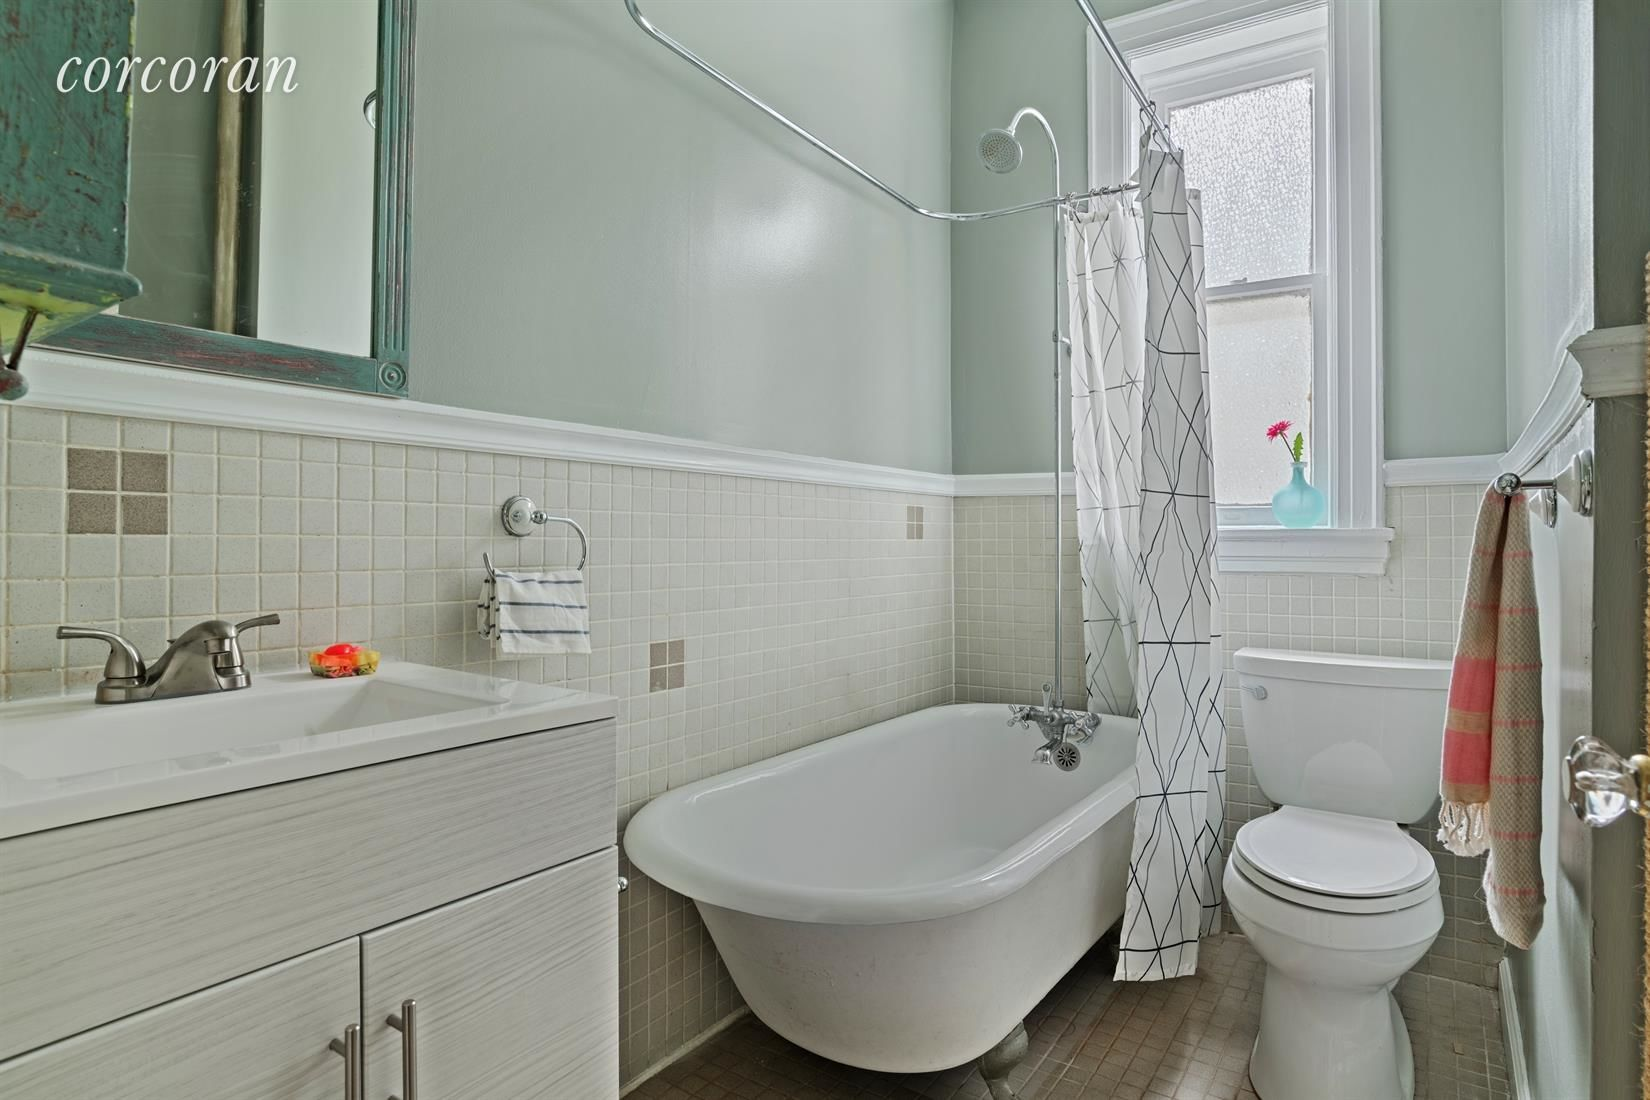 566 44th St, APT 2C Photo 6 - CORCORAN-5725633